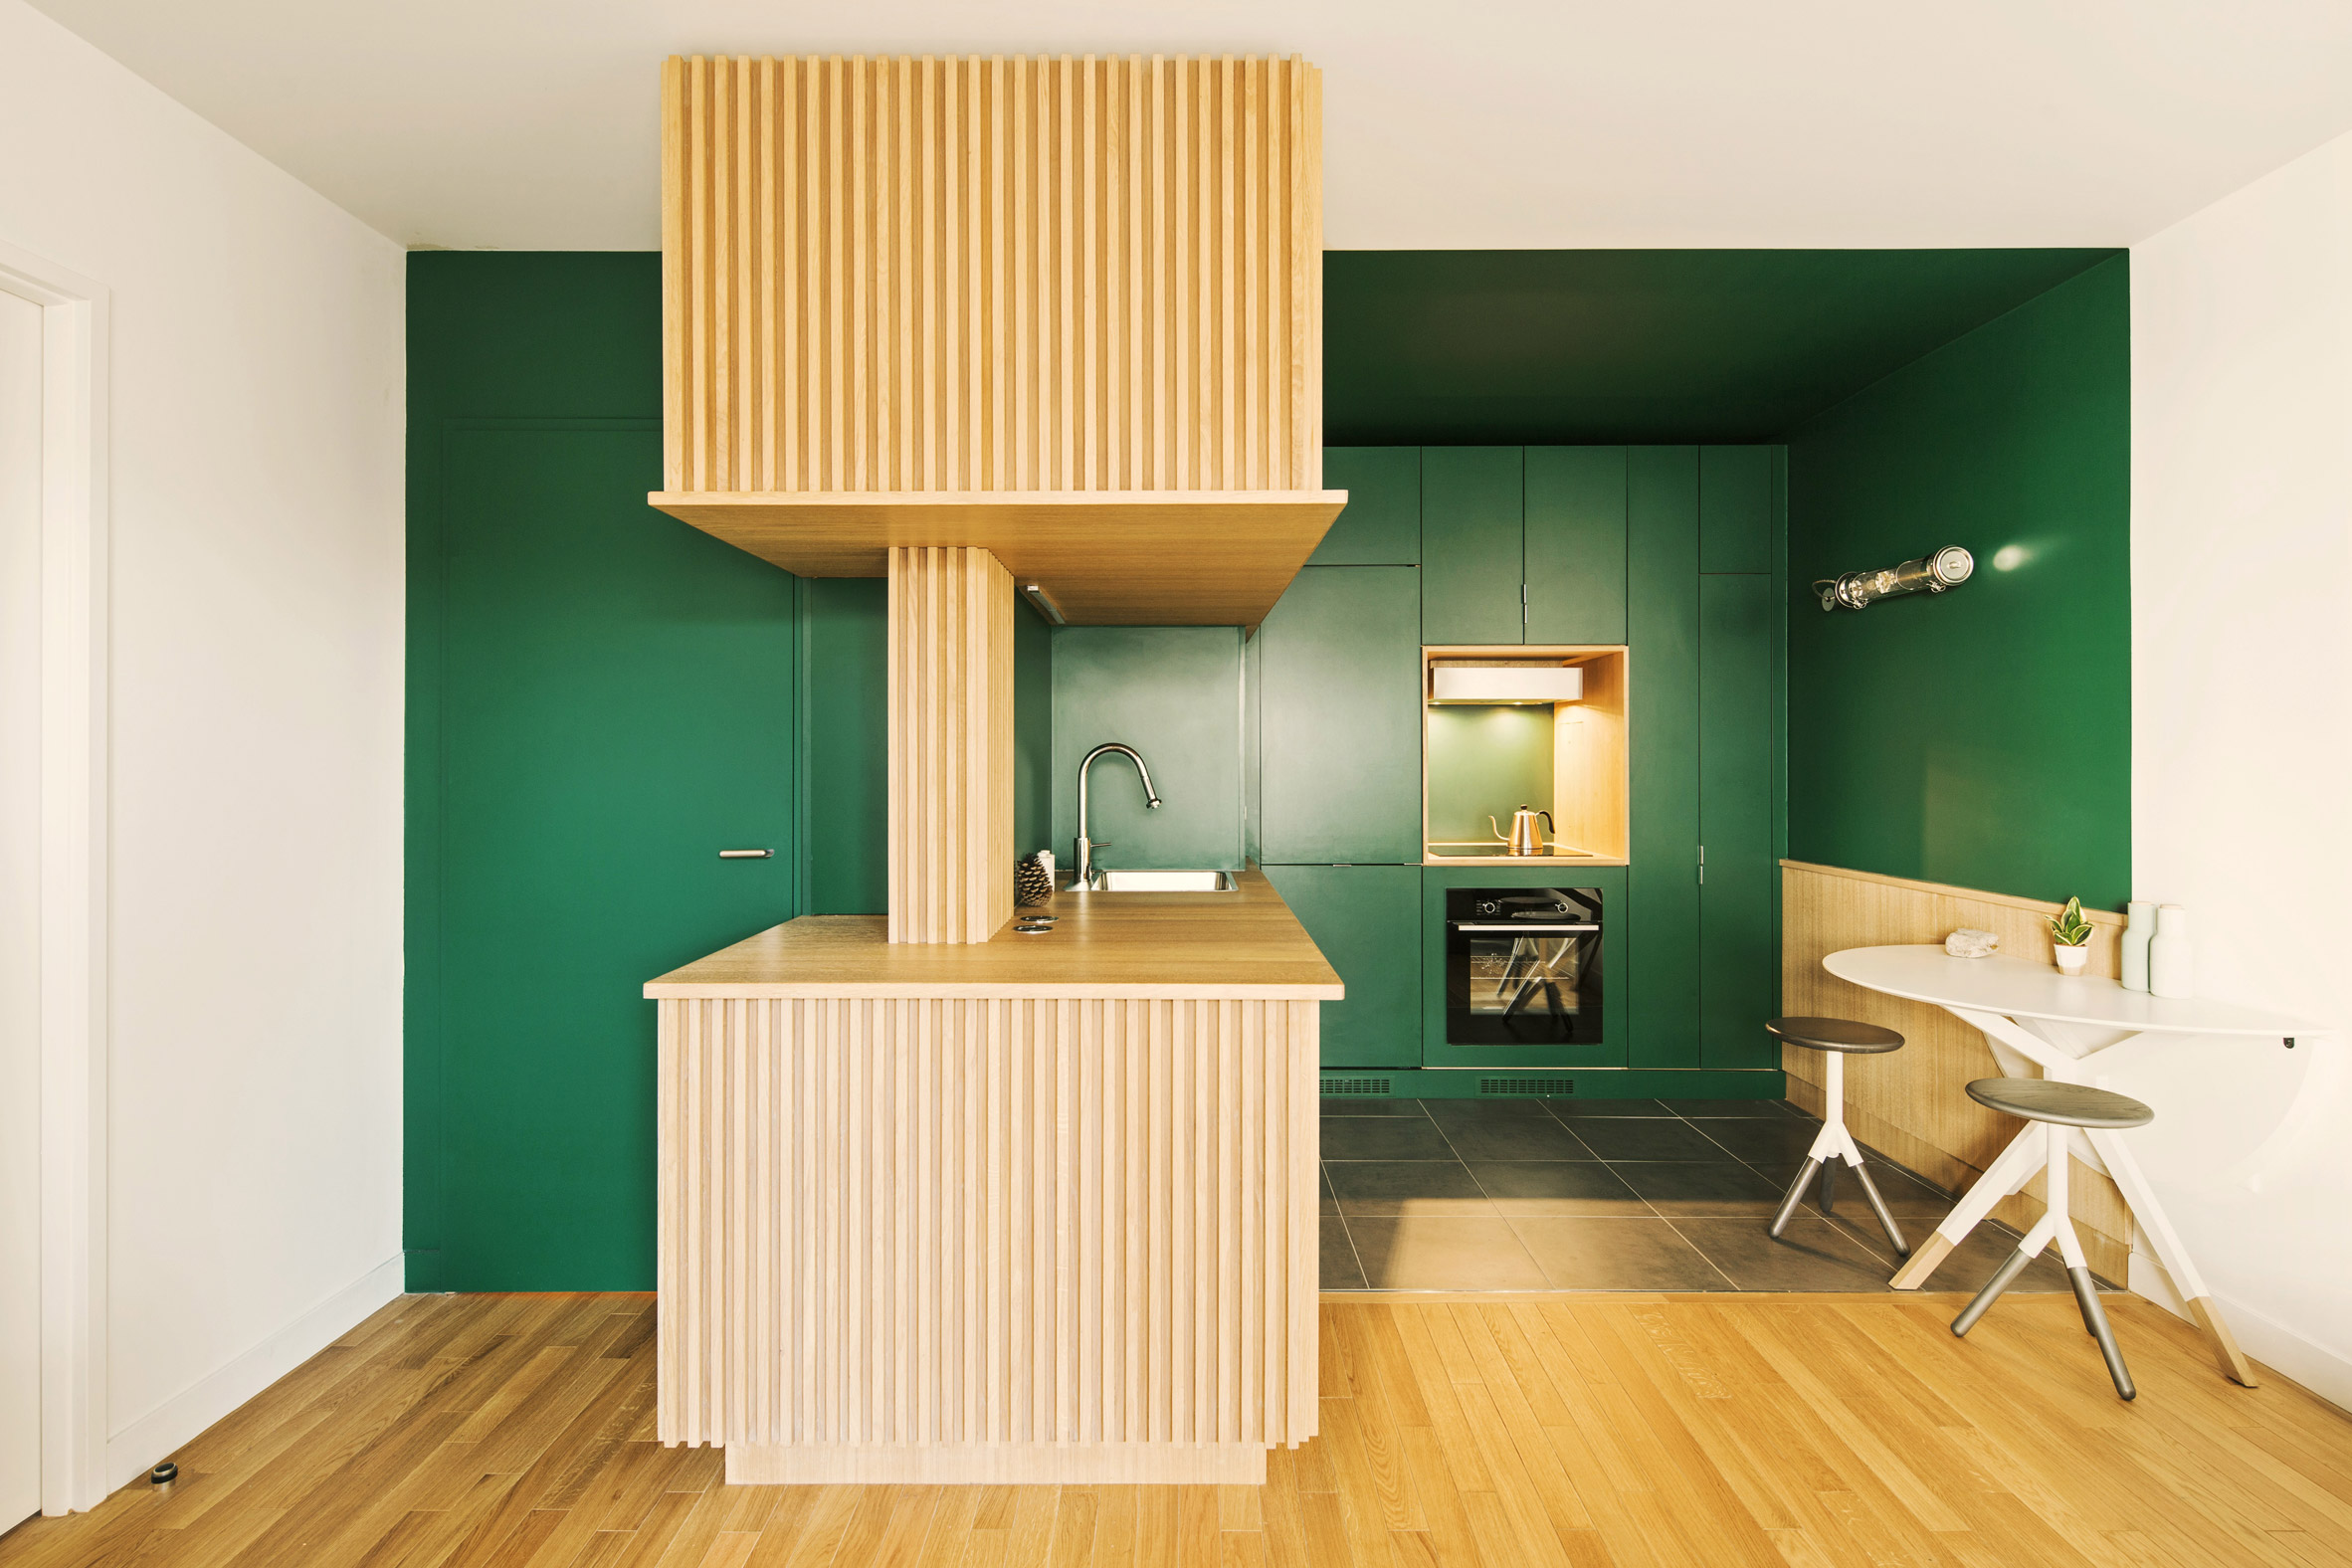 Apartment with green-walled kitchen